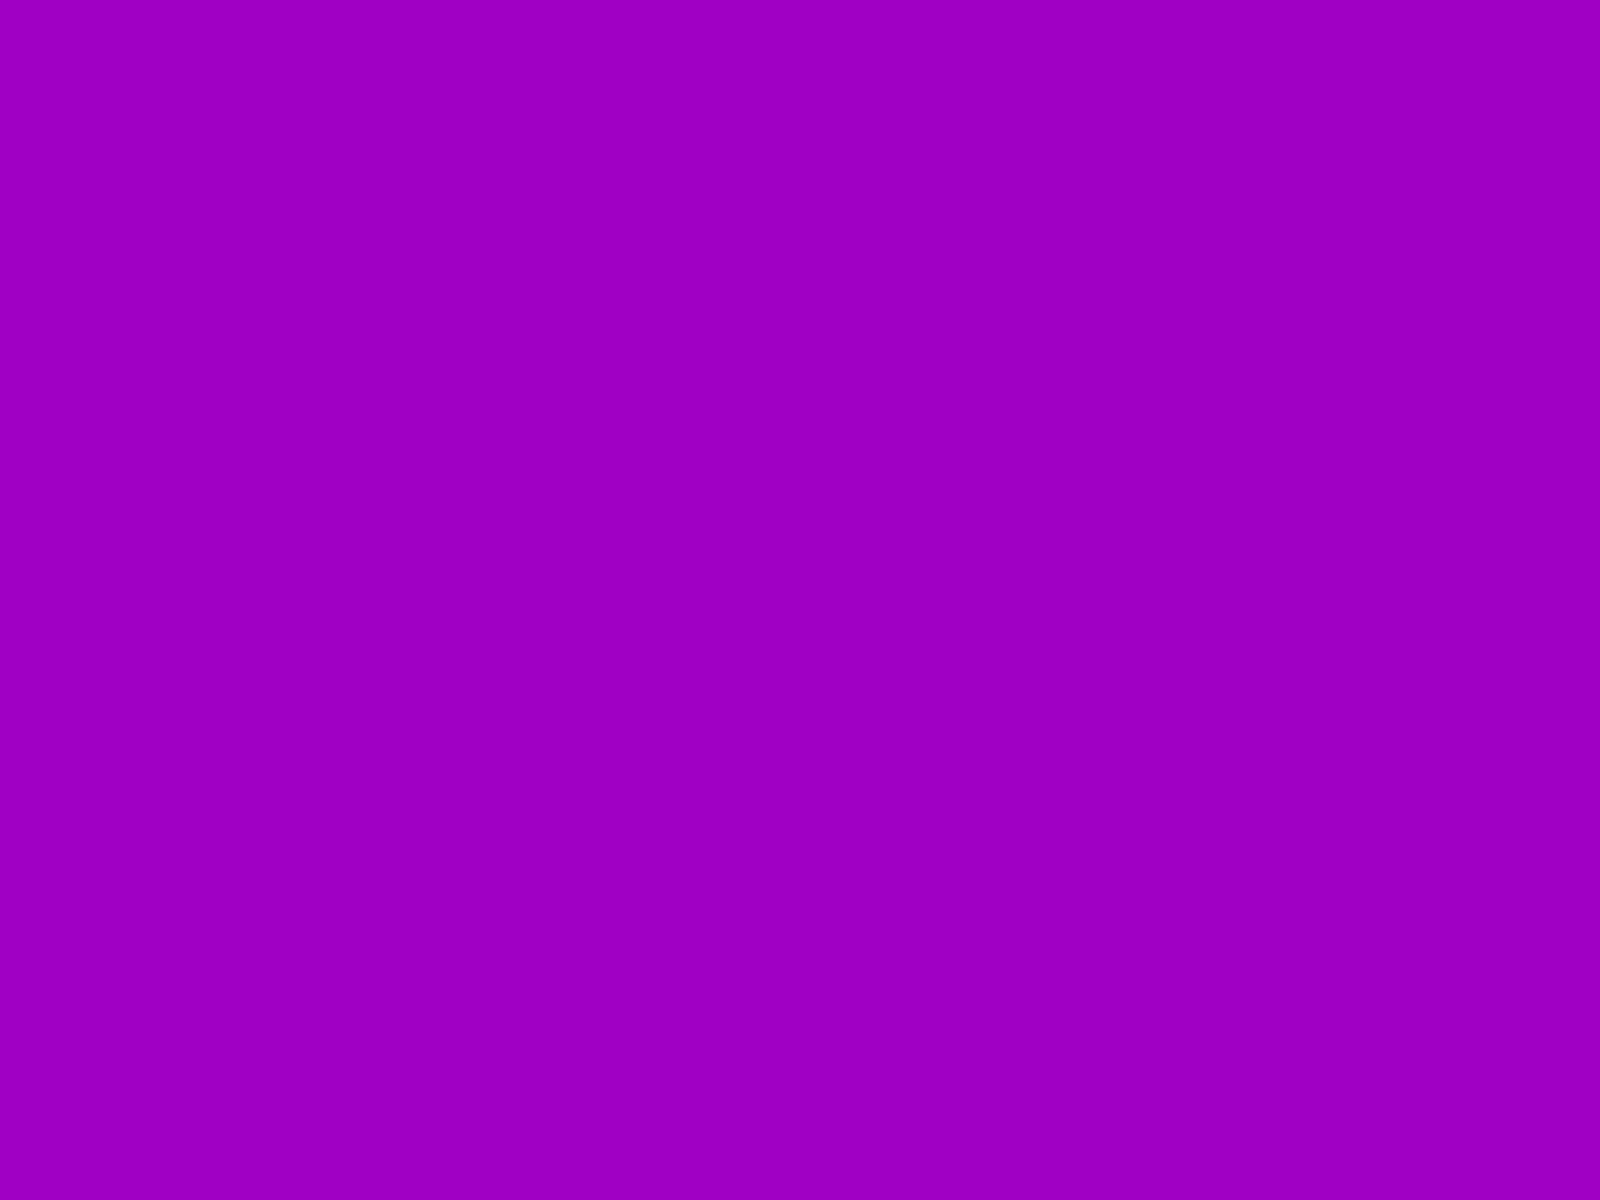 1600x1200 Purple Munsell Solid Color Background